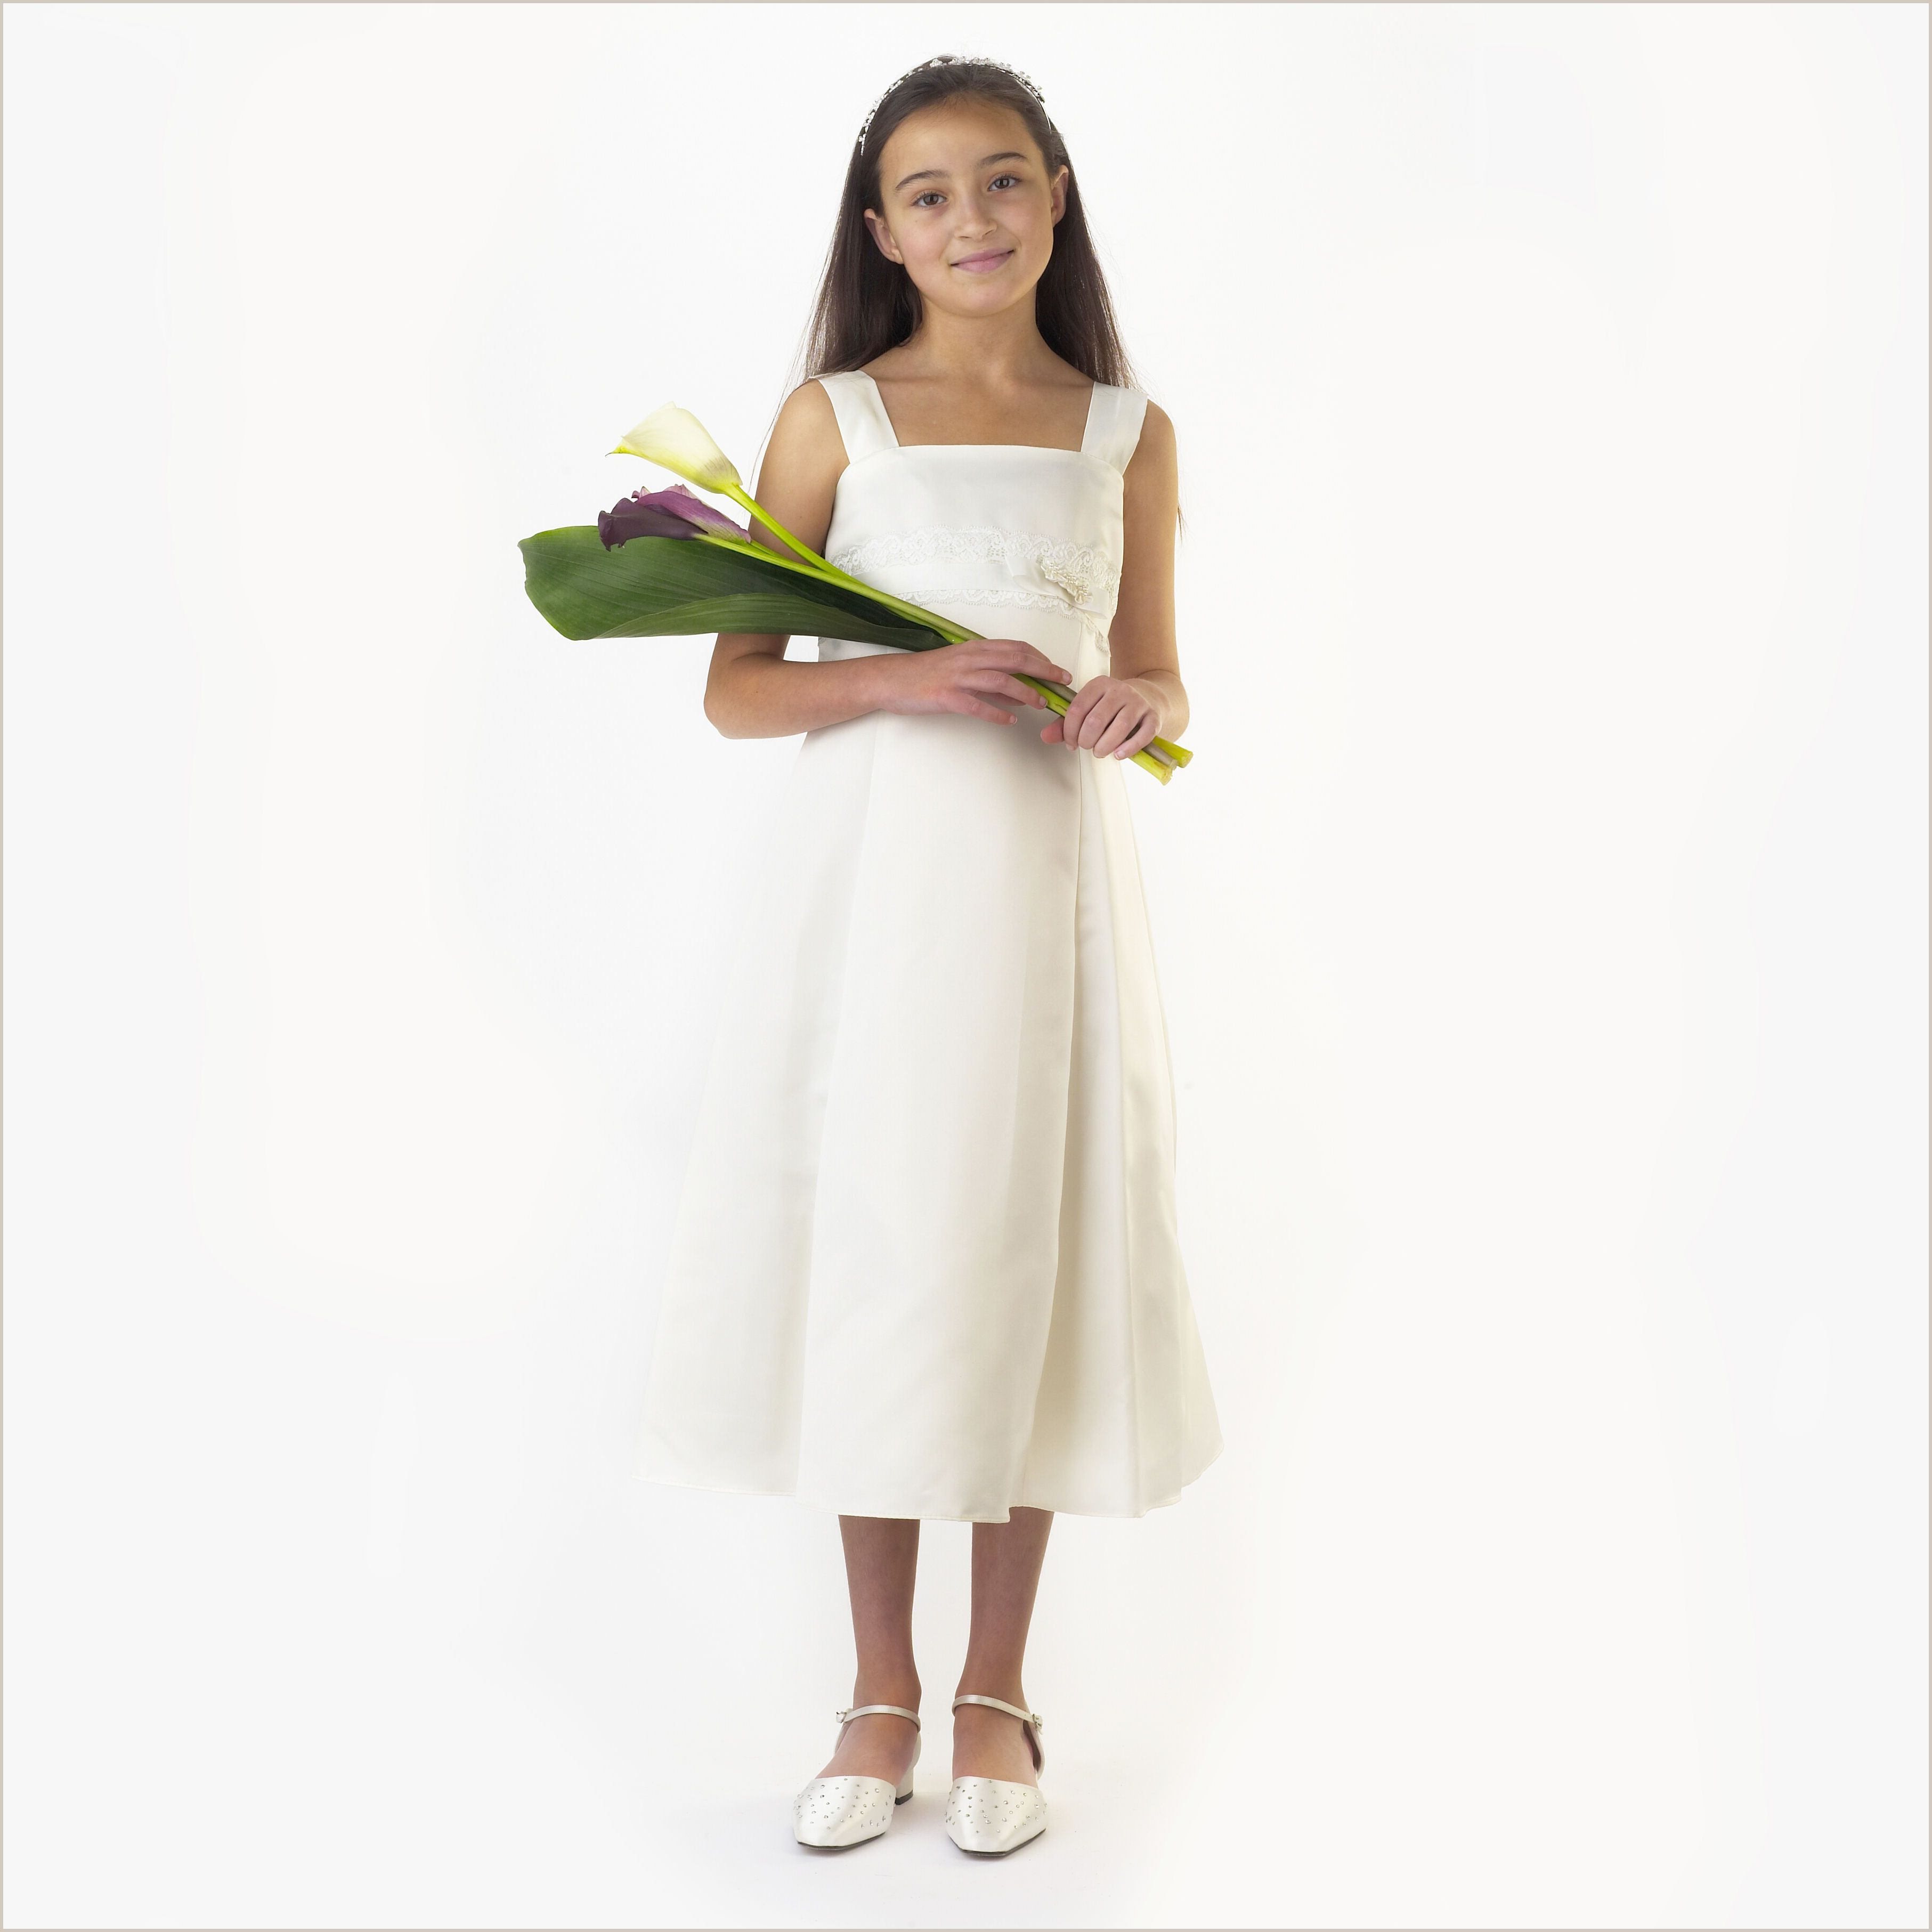 Teen bridesmaid dresses uk gallery braidsmaid dress cocktail bridesmaid and junior bridesmaid dresses image collections junior bridesmaid dresses with ribbon bridesmaid dresses pinterest ombrellifo ombrellifo Images